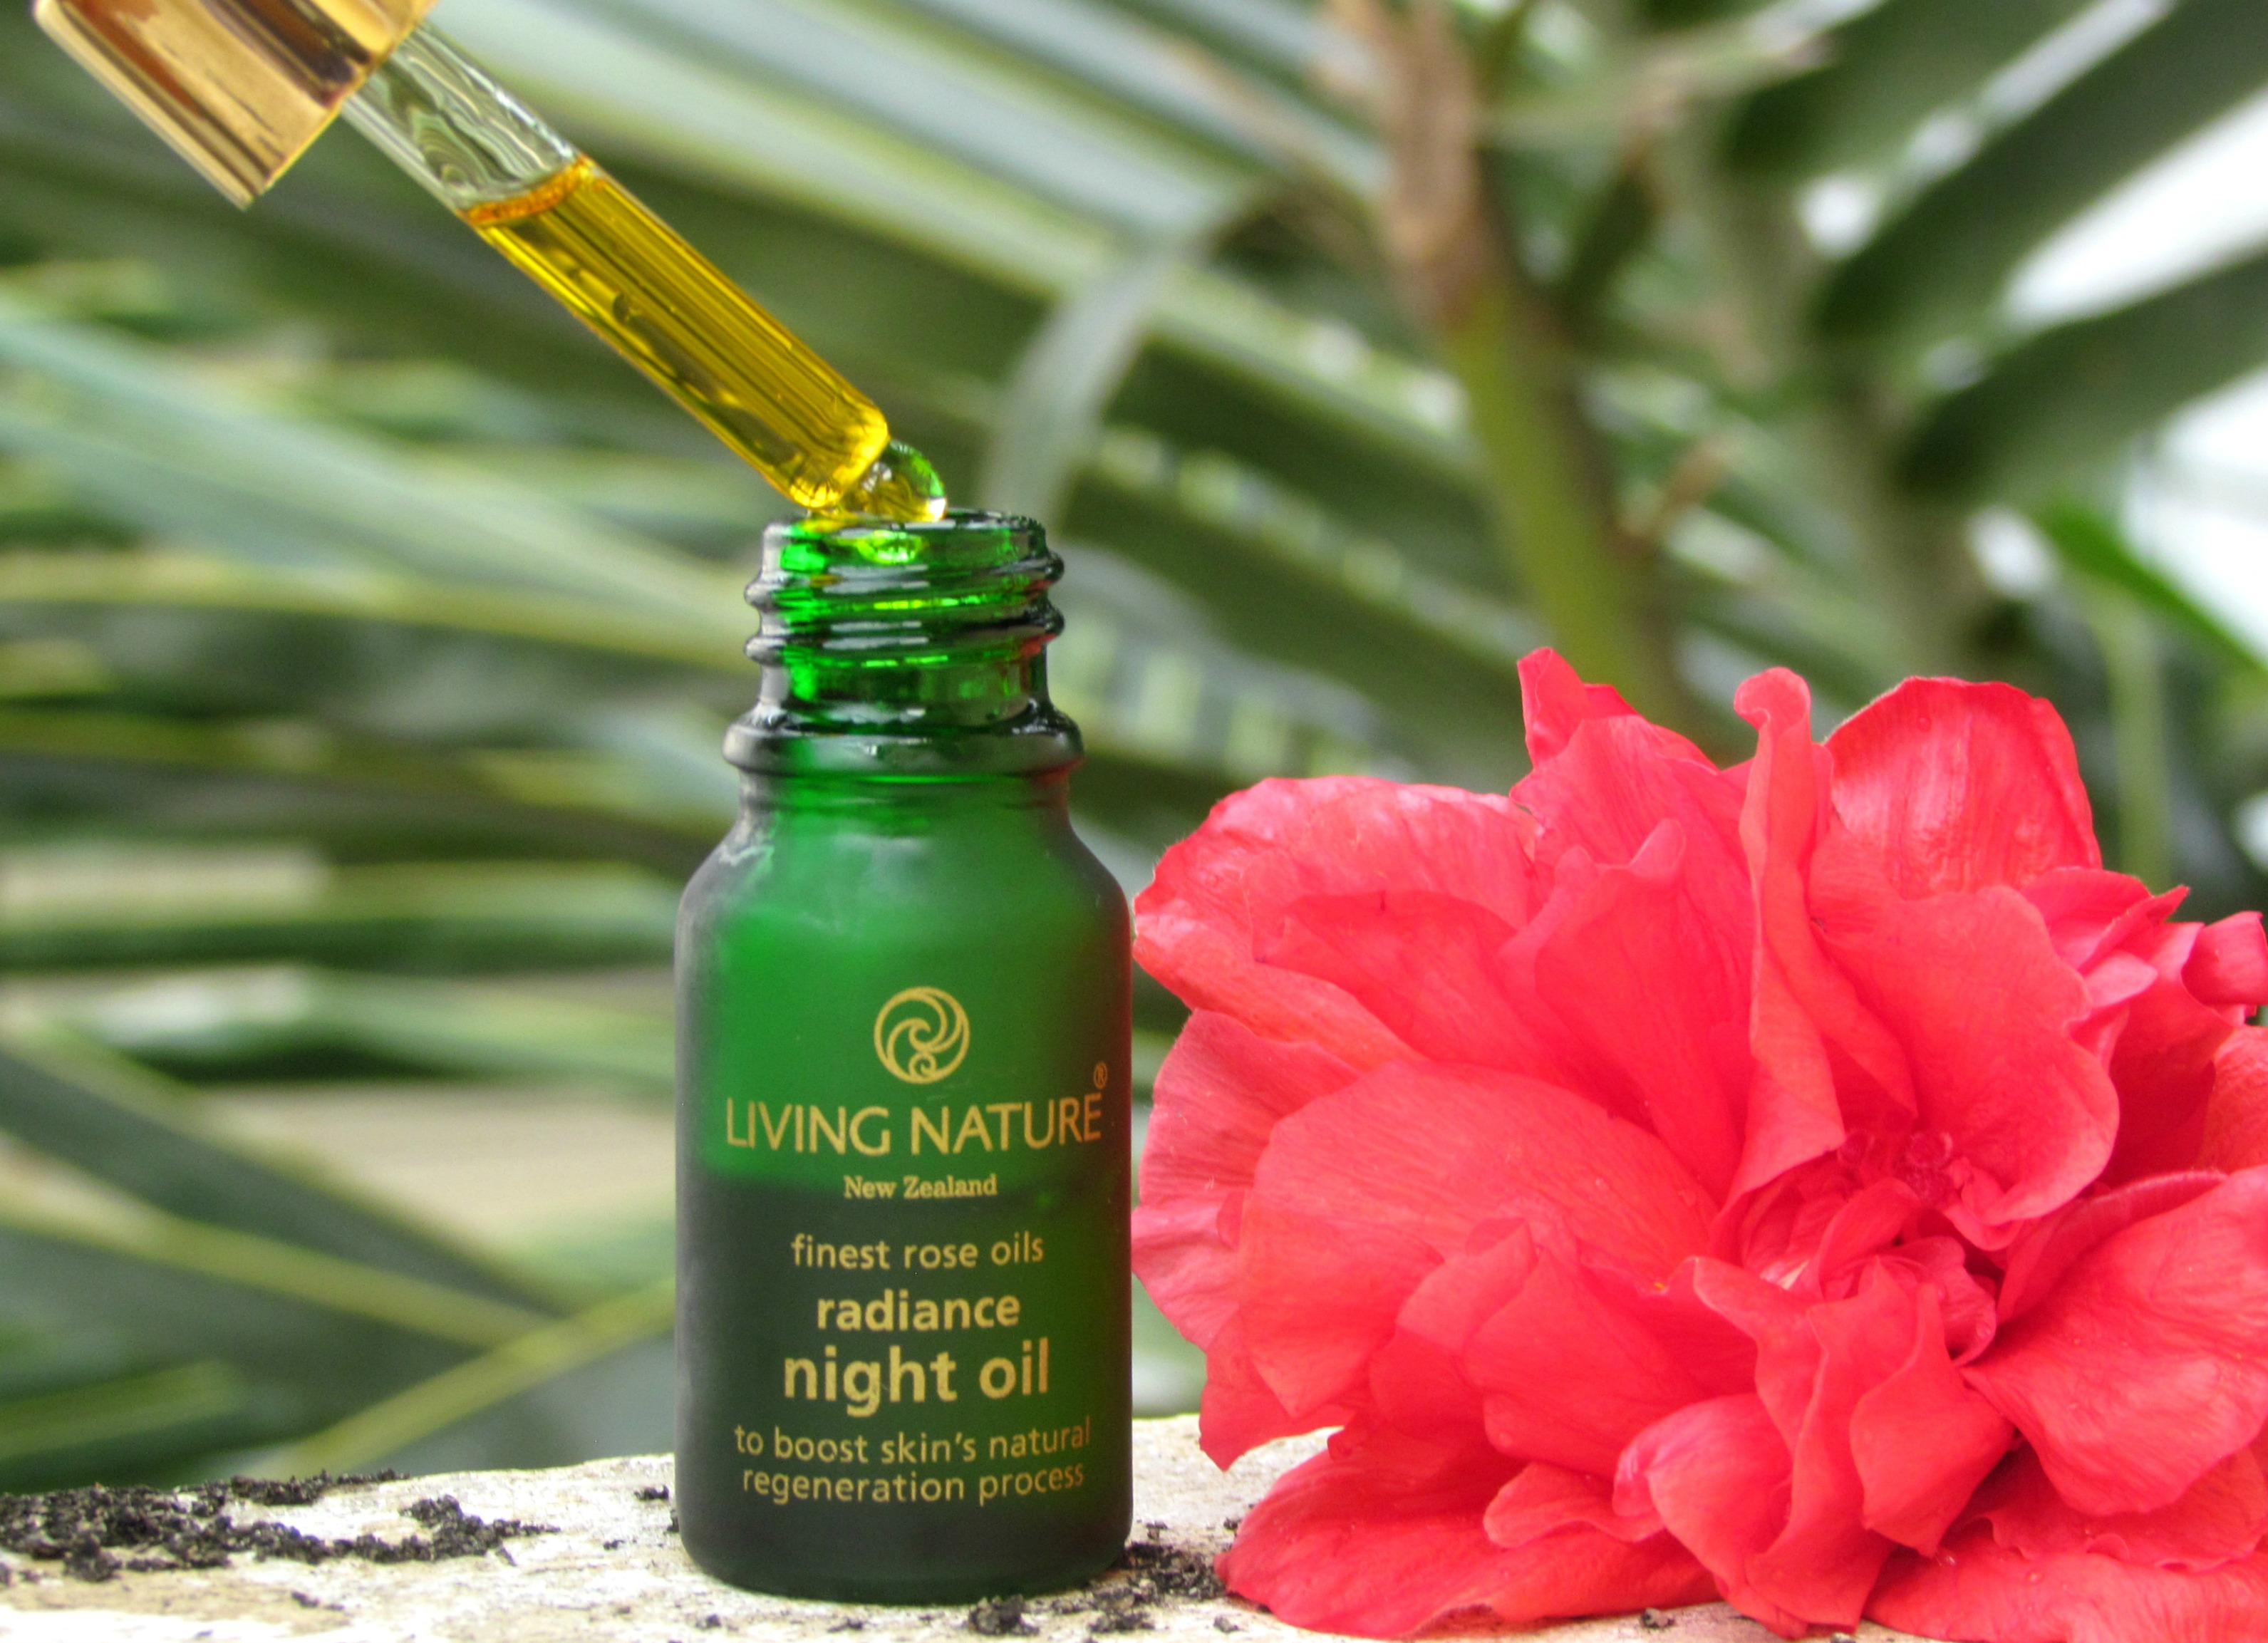 One of the best Night Oil in the market – Living Nature Radiance Night Oil